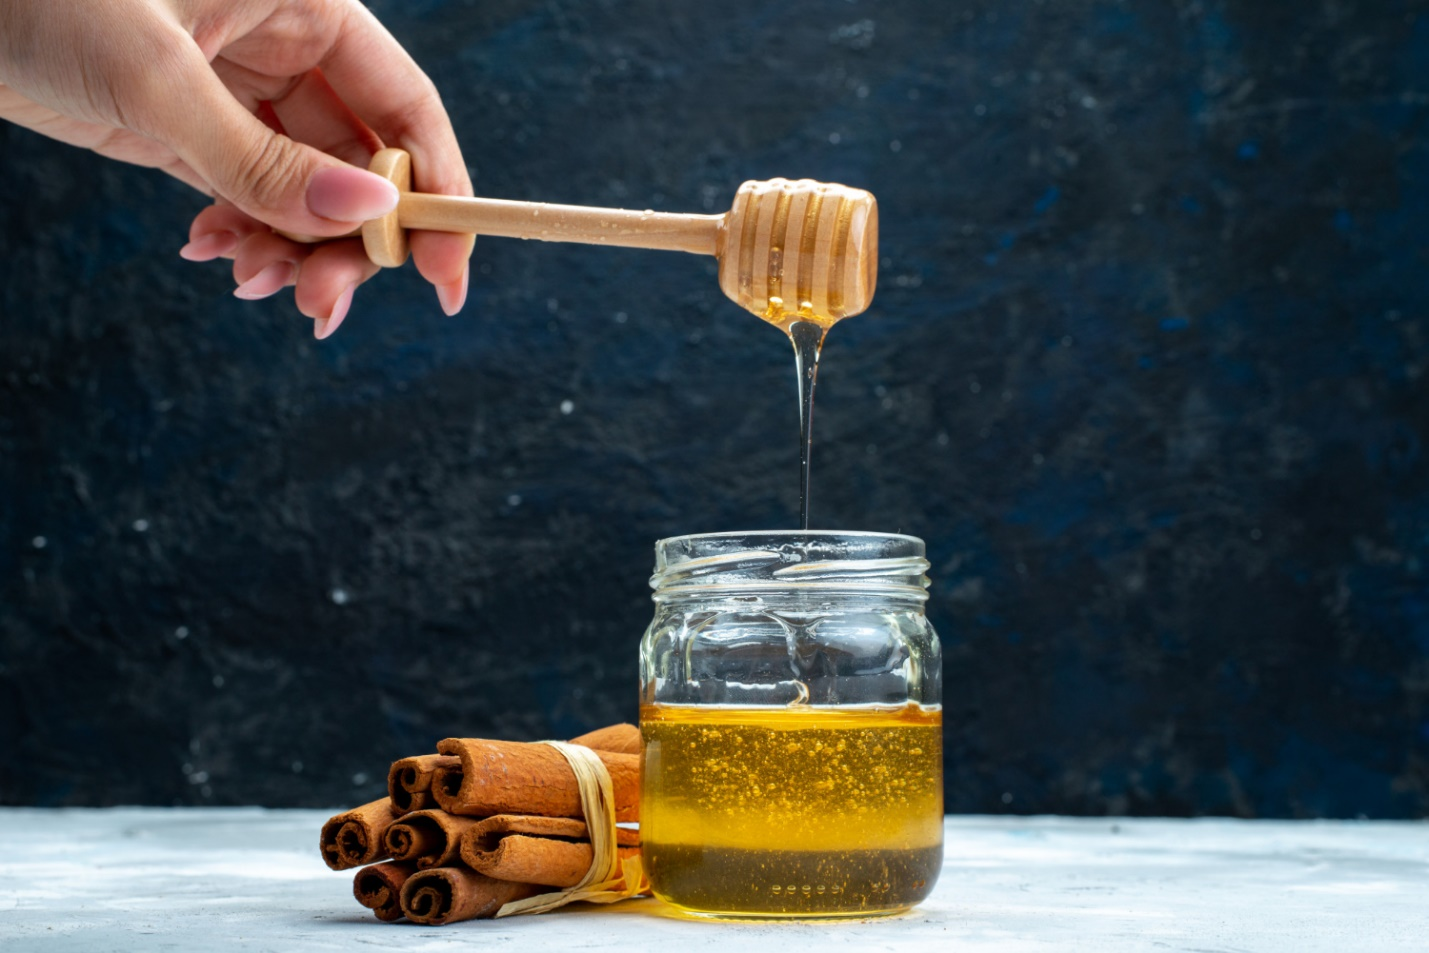 Best Sweetener for Keto: Can we add Sweeteners in Ketogenic Diet? Bariatric Station